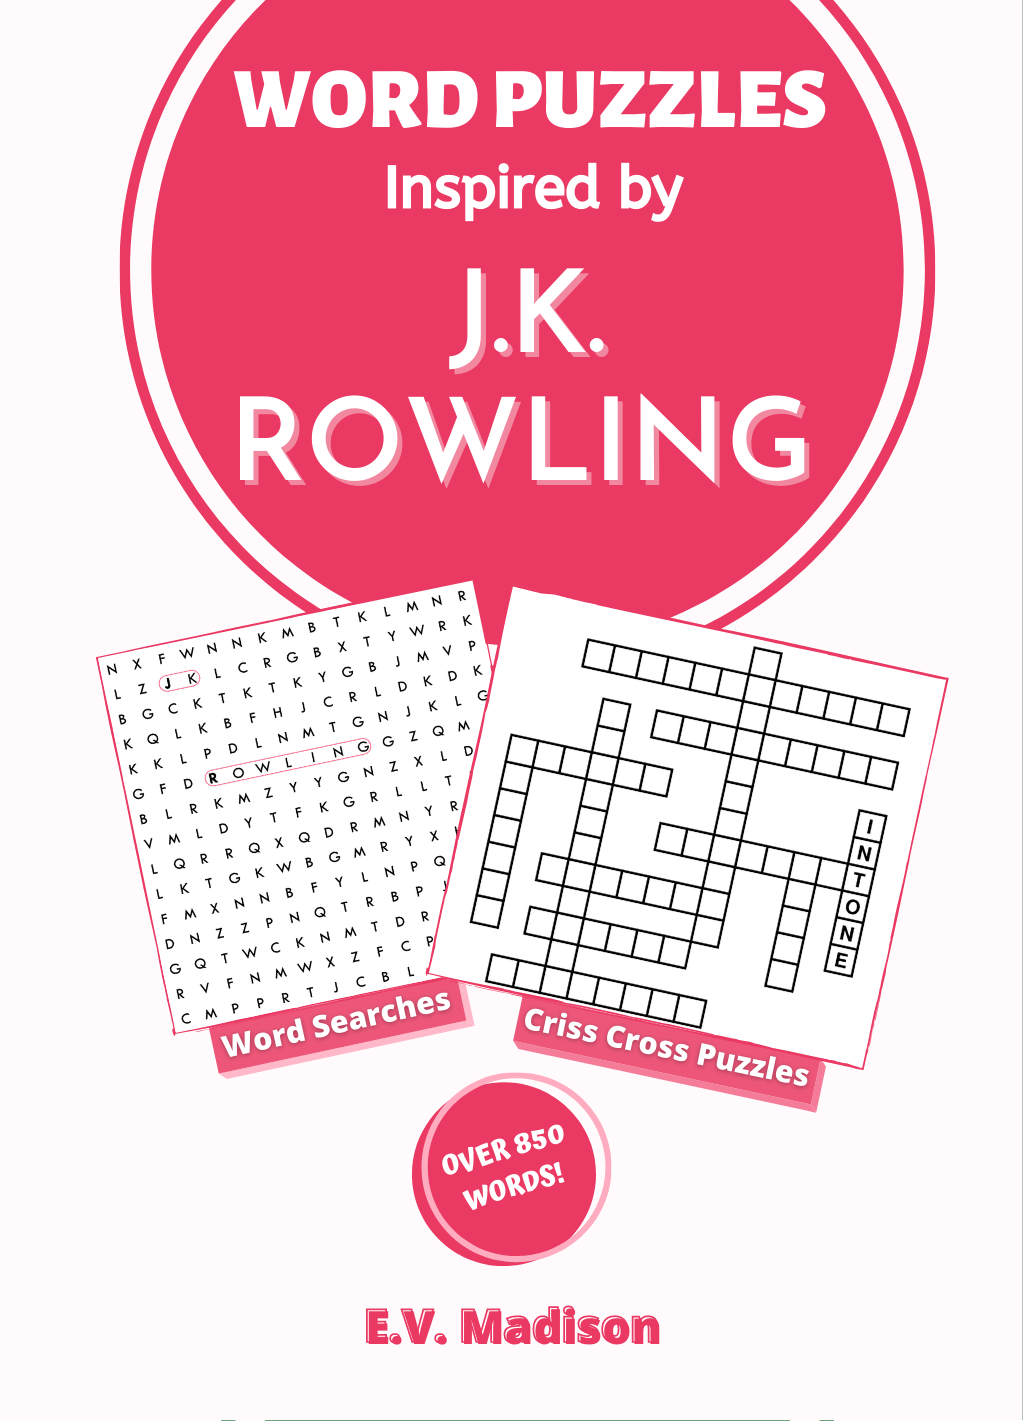 Word Puzzles Inspired by J. K. Rowling